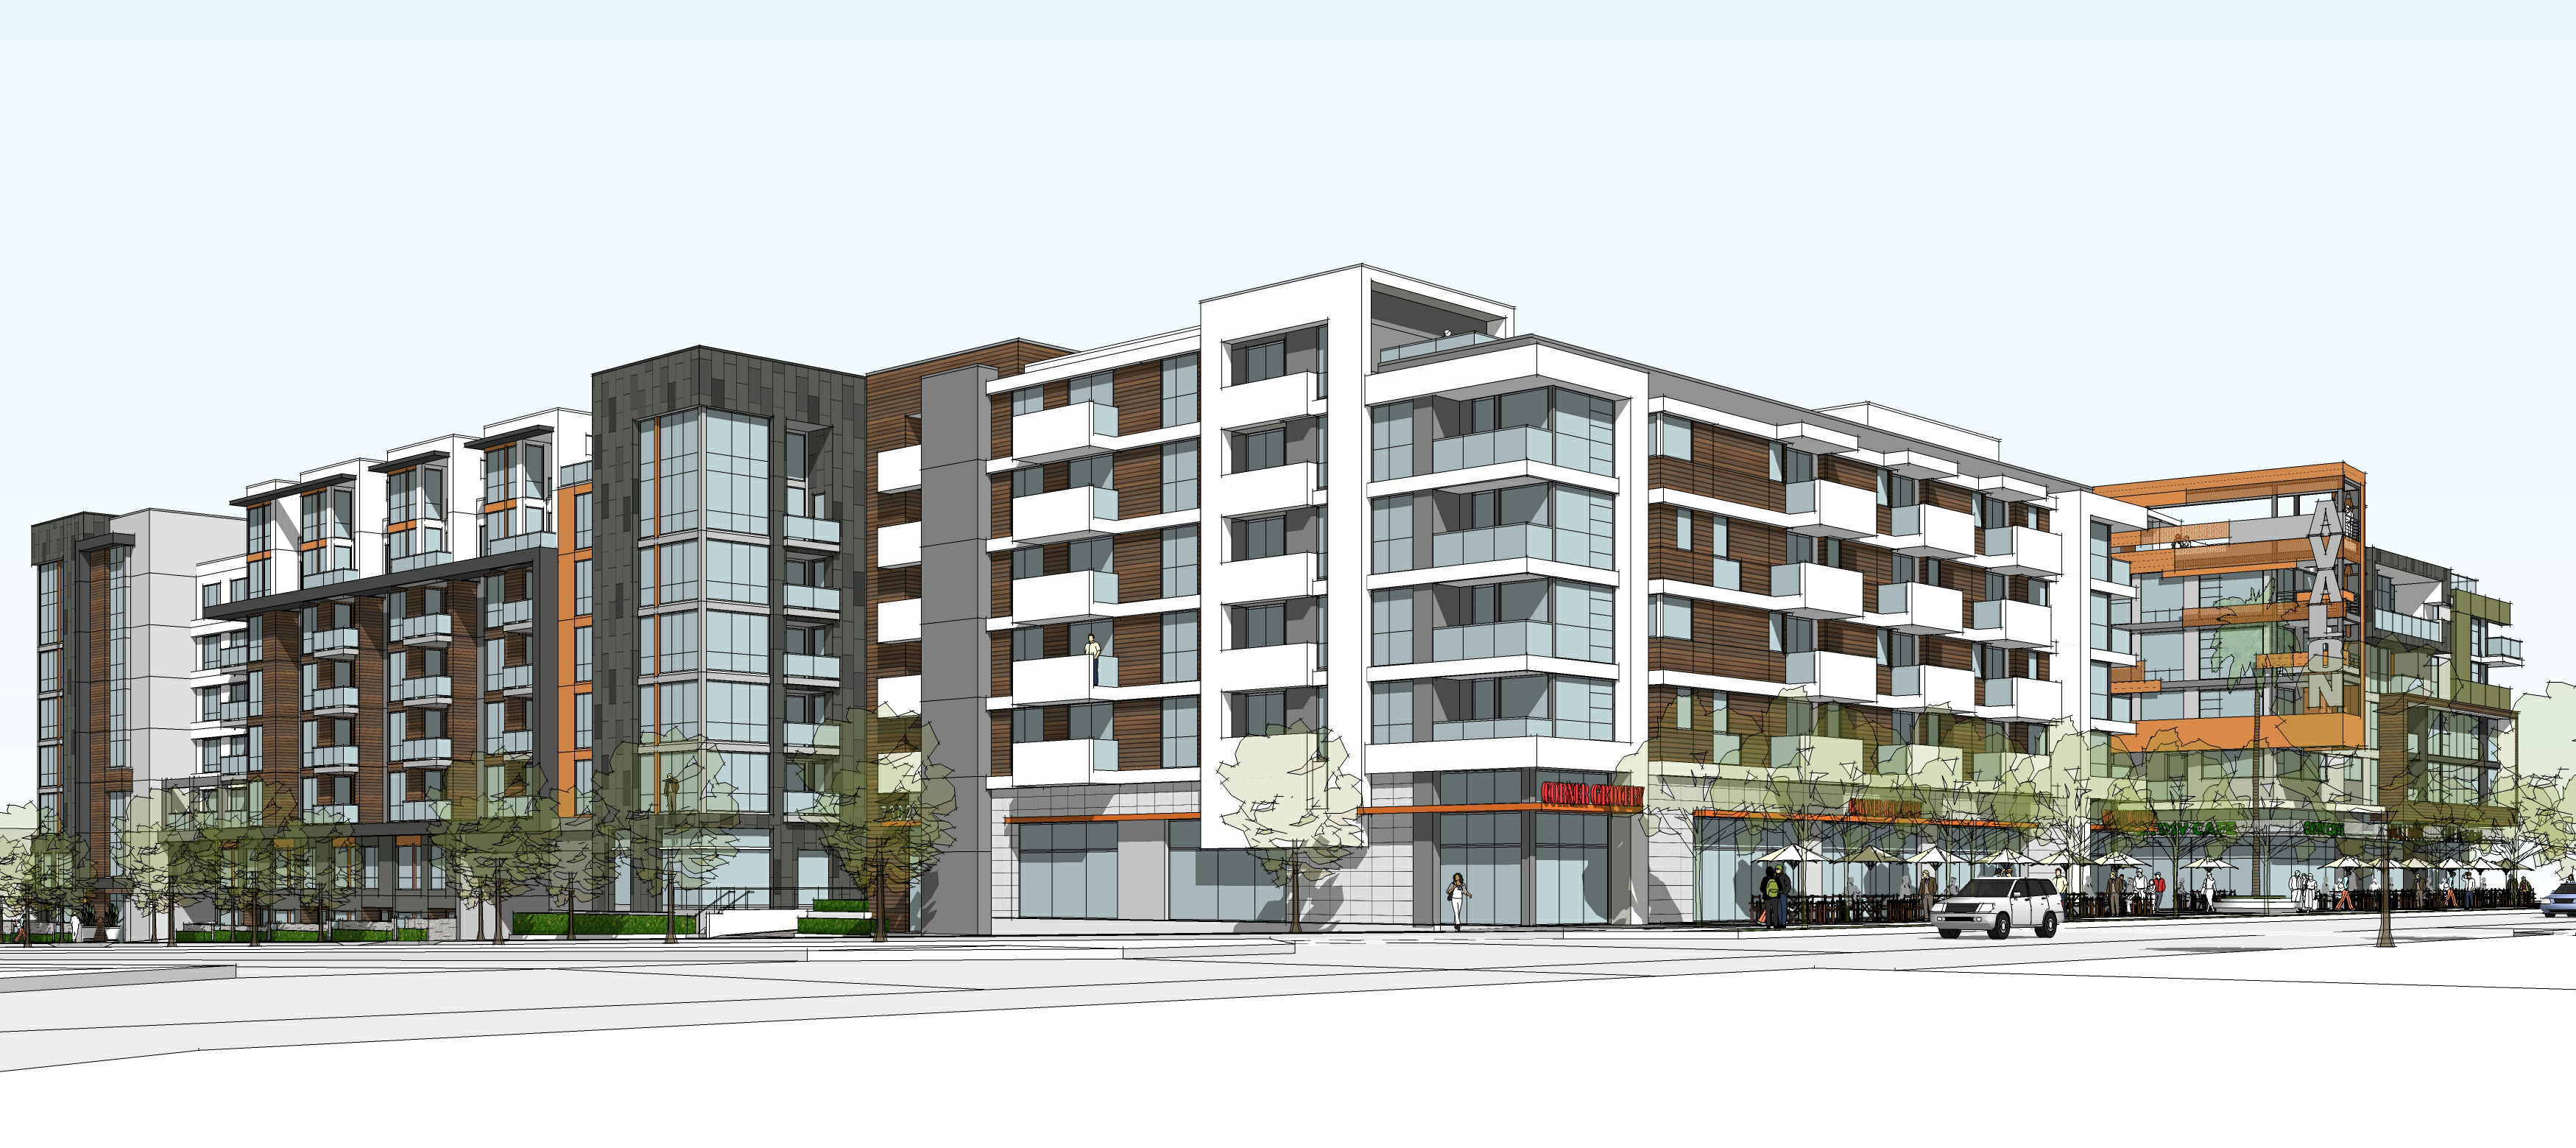 Illustration of proposed Movietown Plaza development as seen from the corner of Santa Monica Boulevard at Poinsettia. (Architect MVE & Partners, Irvine)